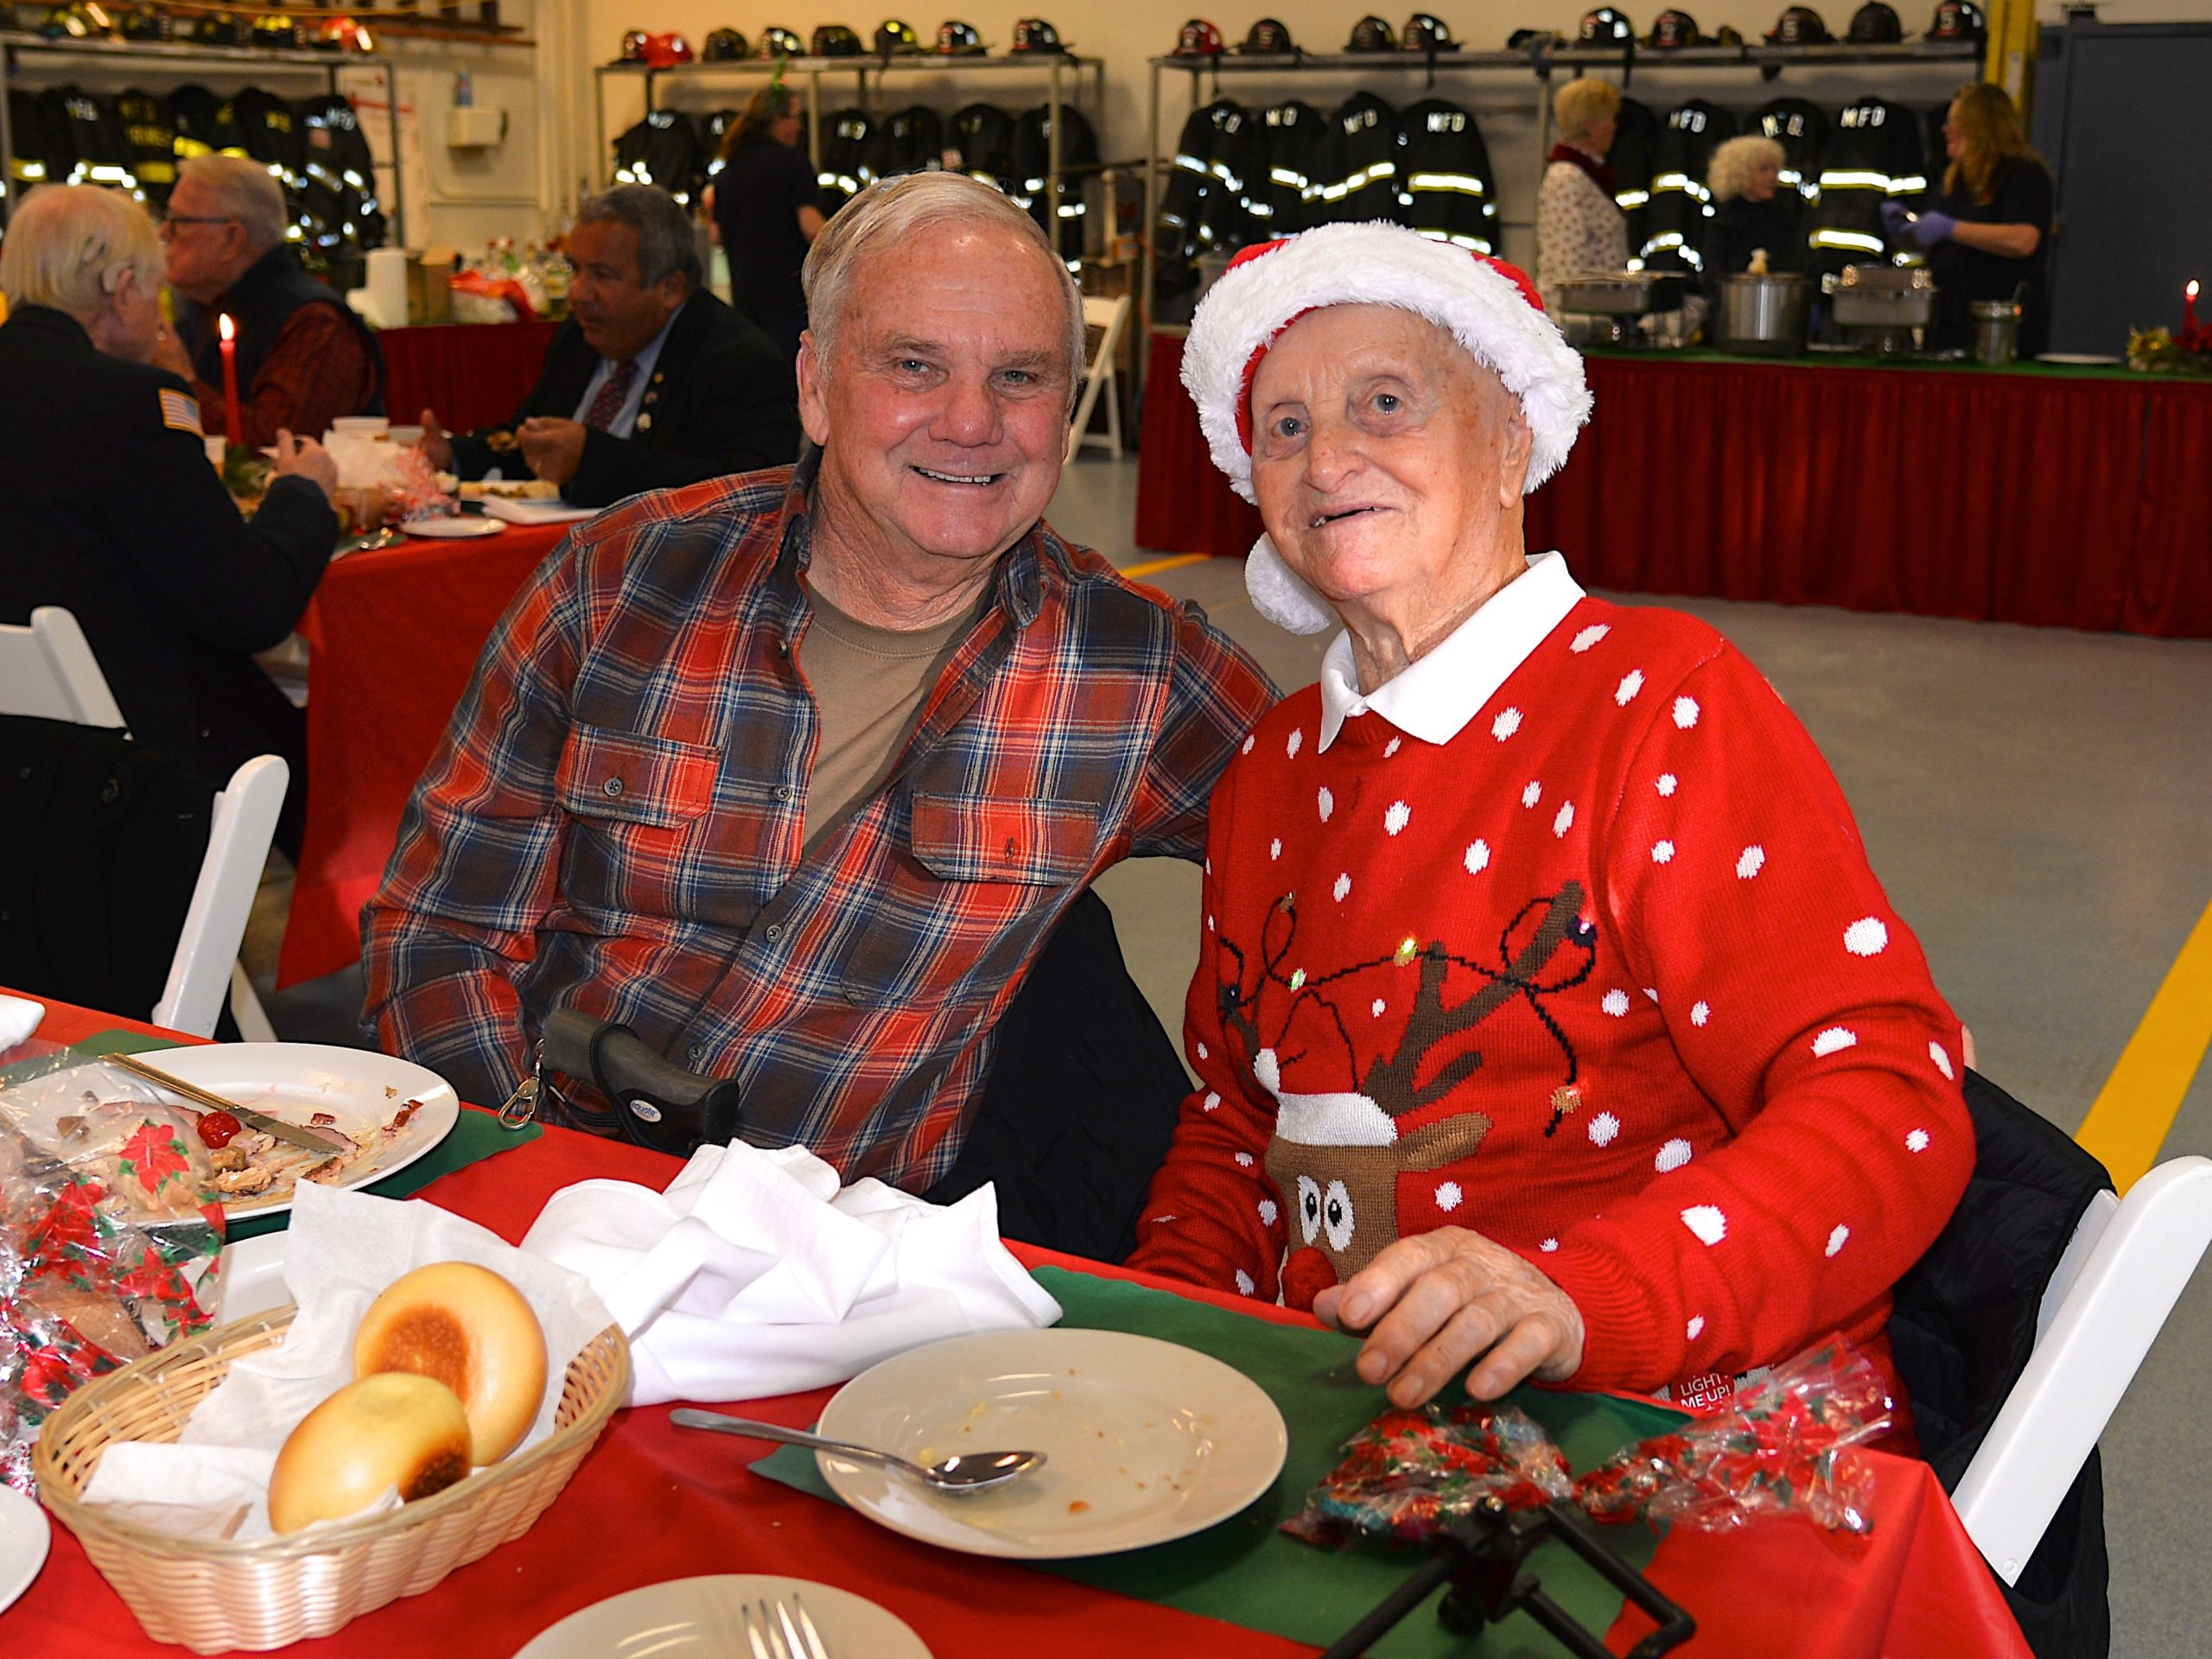 The Montauk Fire Department hosted its annual holiday dinner for senior citizens on Sunday.  Bob Dunlap and Buddy Burke were there. KYRIL BROMLEY